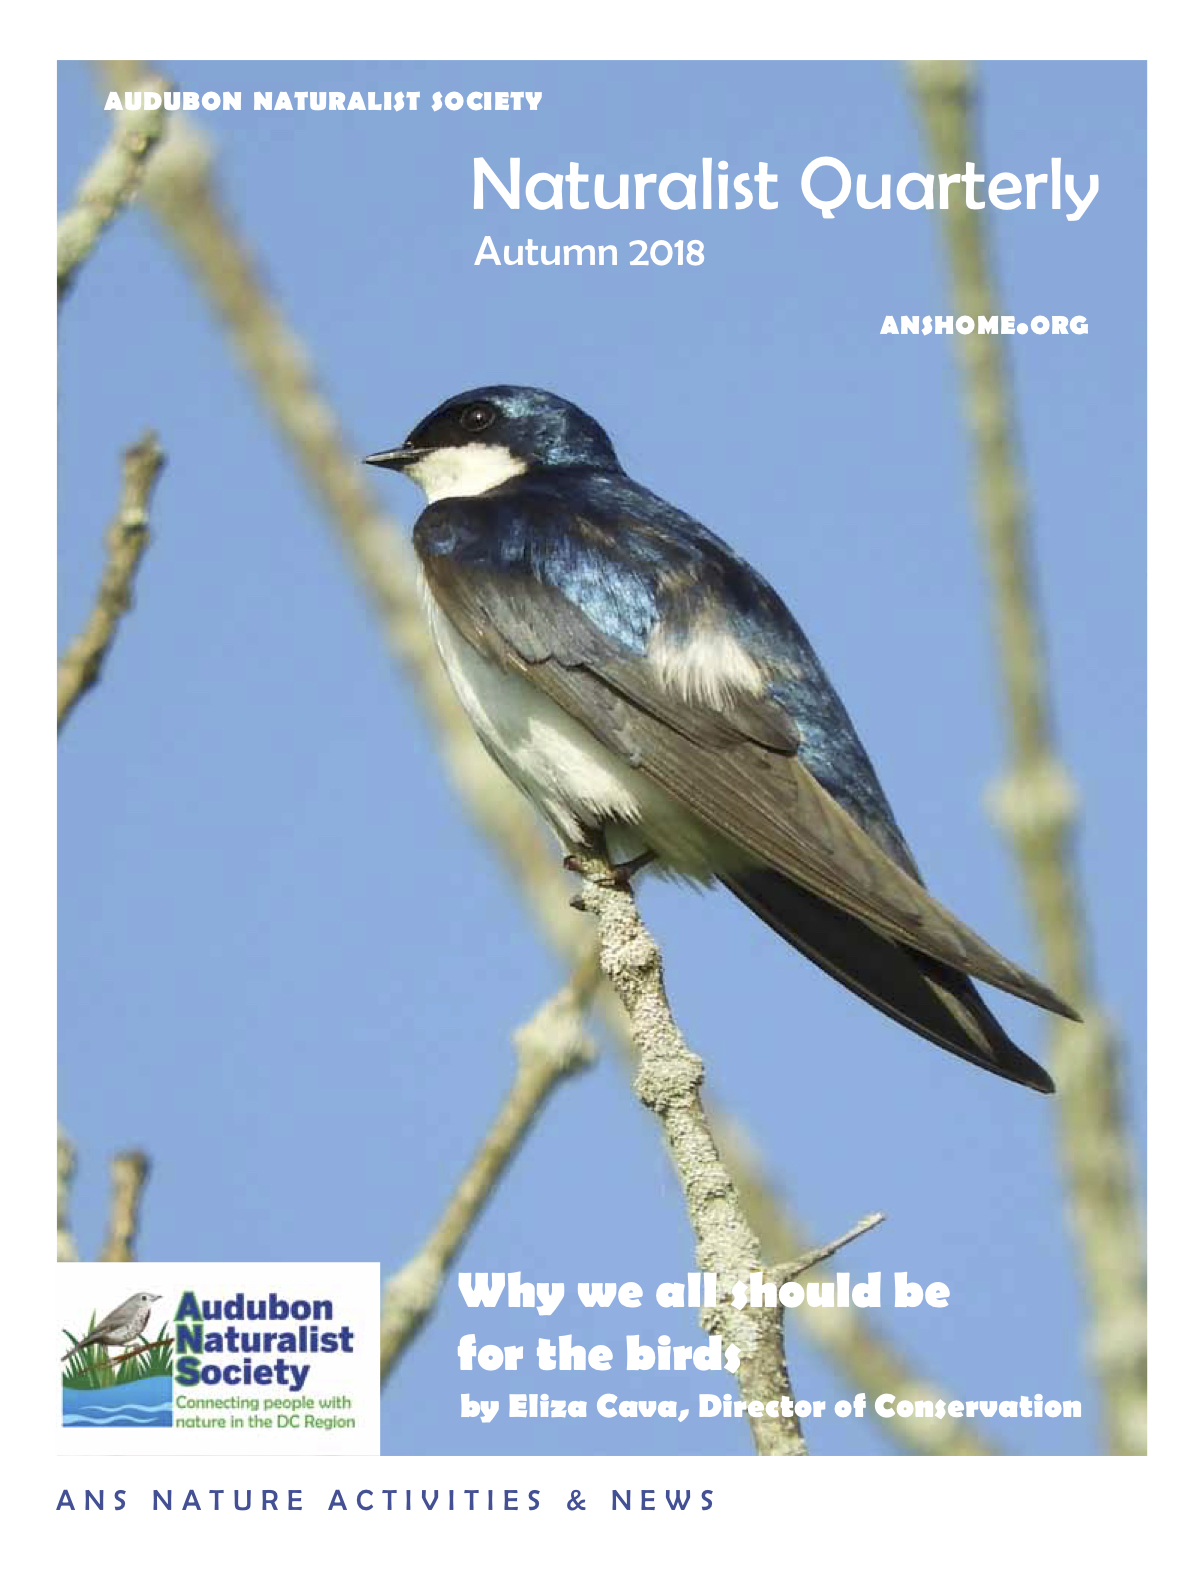 ANS Naturalist Quarterly - Autumn 2018